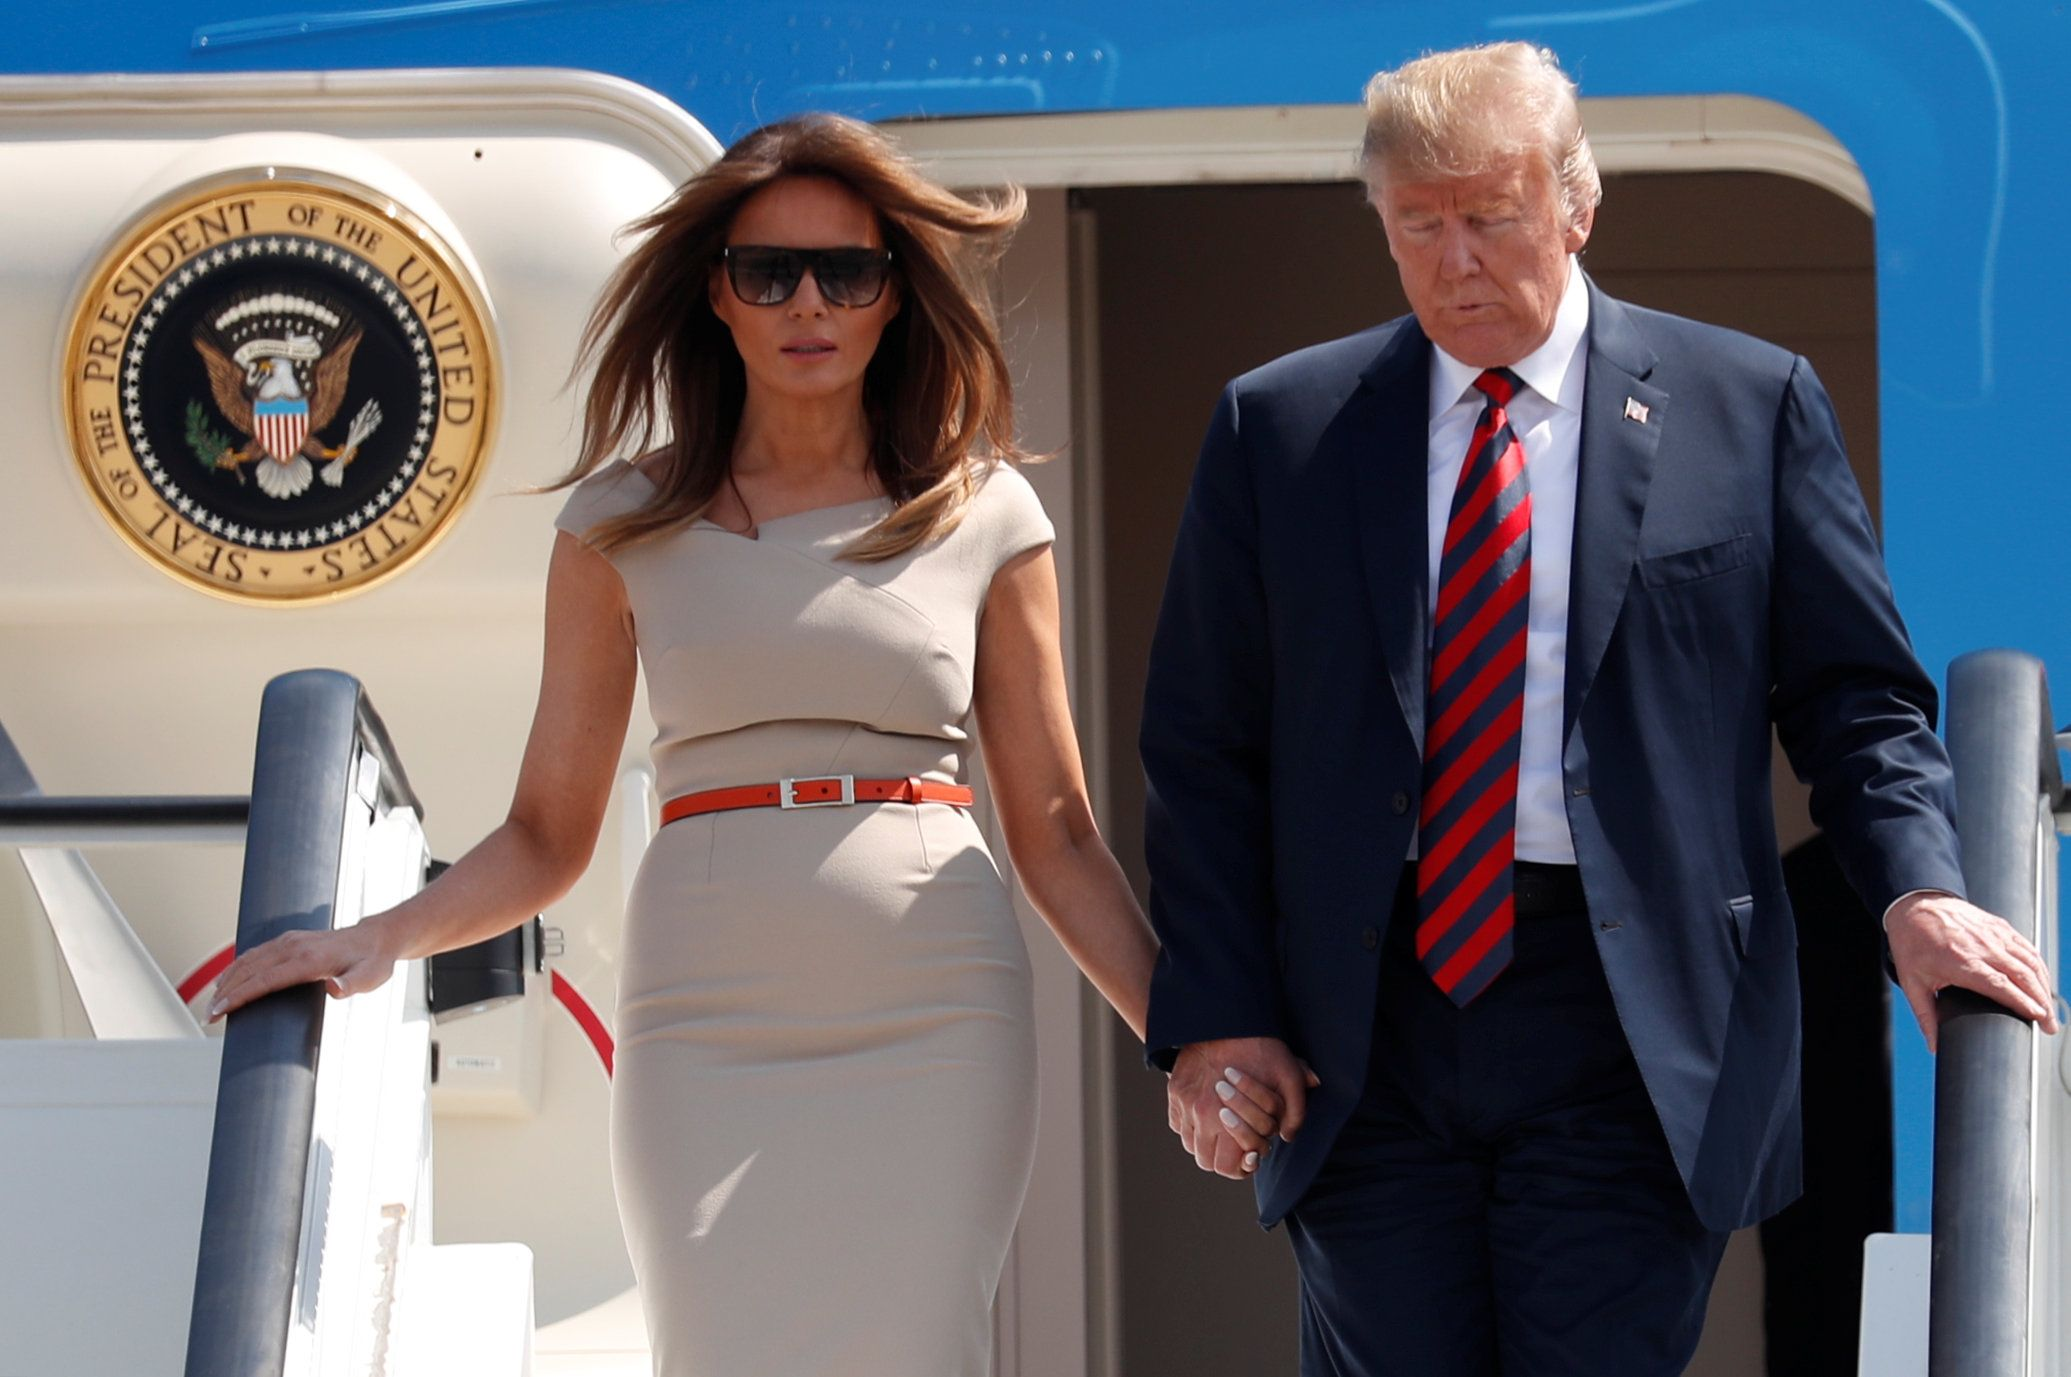 2018-07-12T133109Z_2108279340_RC191639EAC0_RTRMADP_3_USA-TRUMP-BRITAIN-ARRIVAL